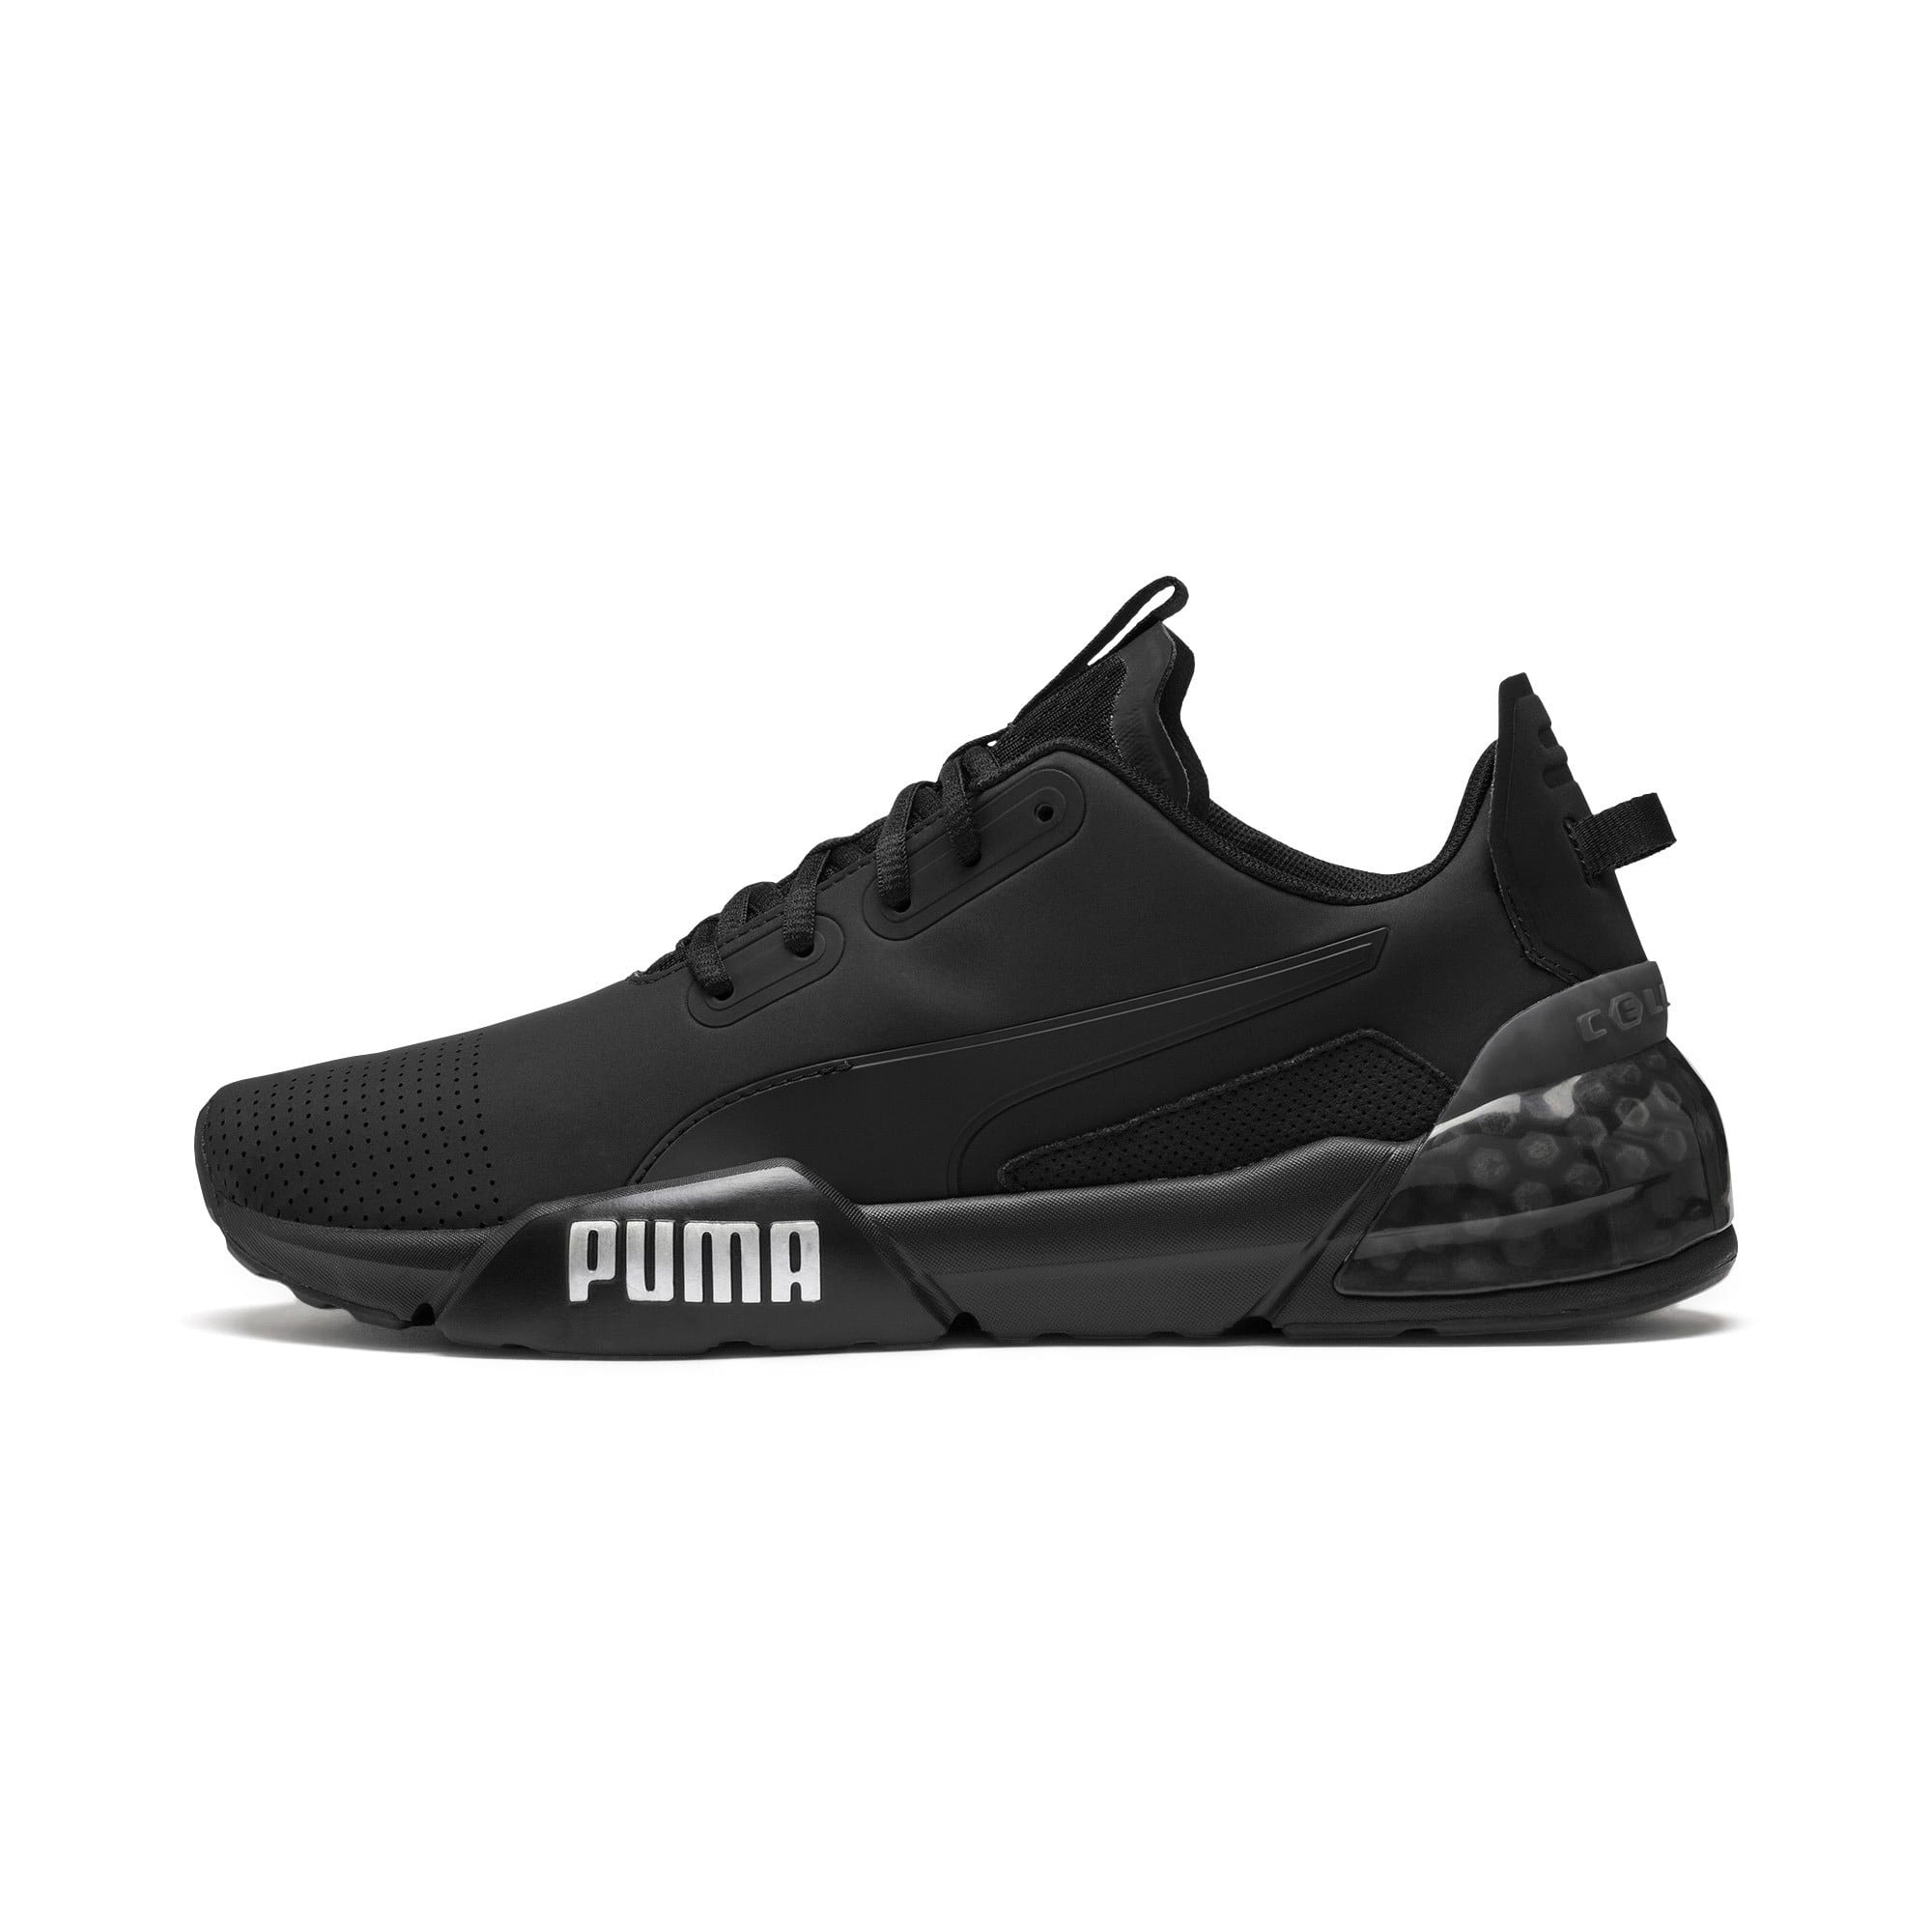 Thumbnail 1 of CELL Phase Men's Training Shoes, Puma Black-CASTLEROCK, medium